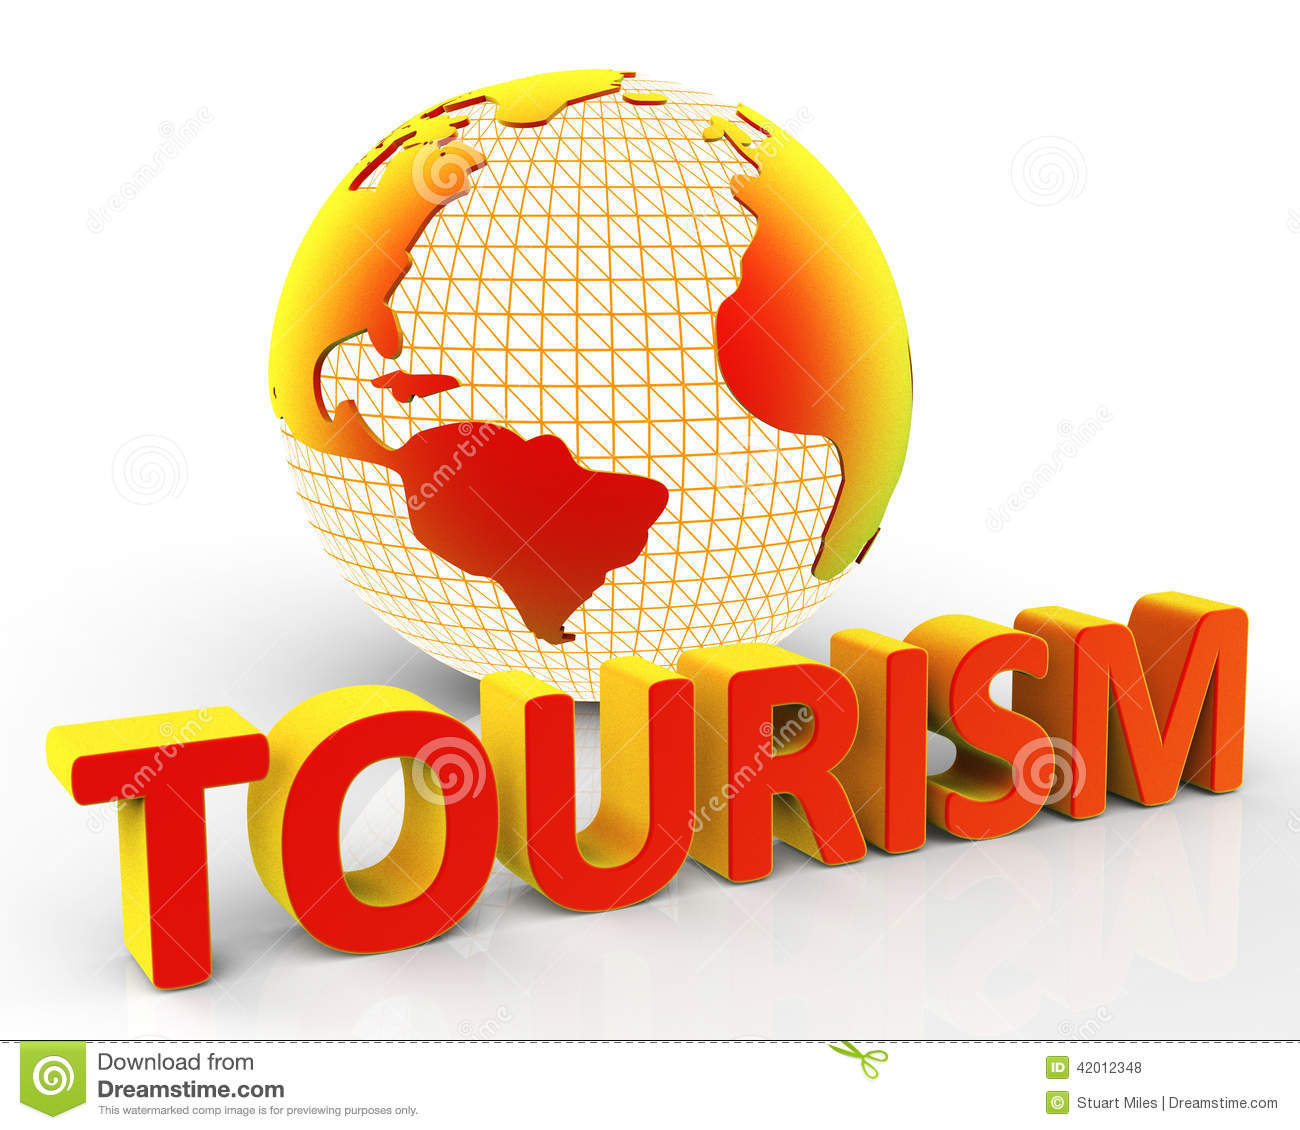 globalization and tourism Between globalization and tourism since the year 1995, the number of tourists' arrivals has been increasing till it reached the total of 842 million international tourists (about 36 million tourists more), with an average increase of 45% yearly (fig3.